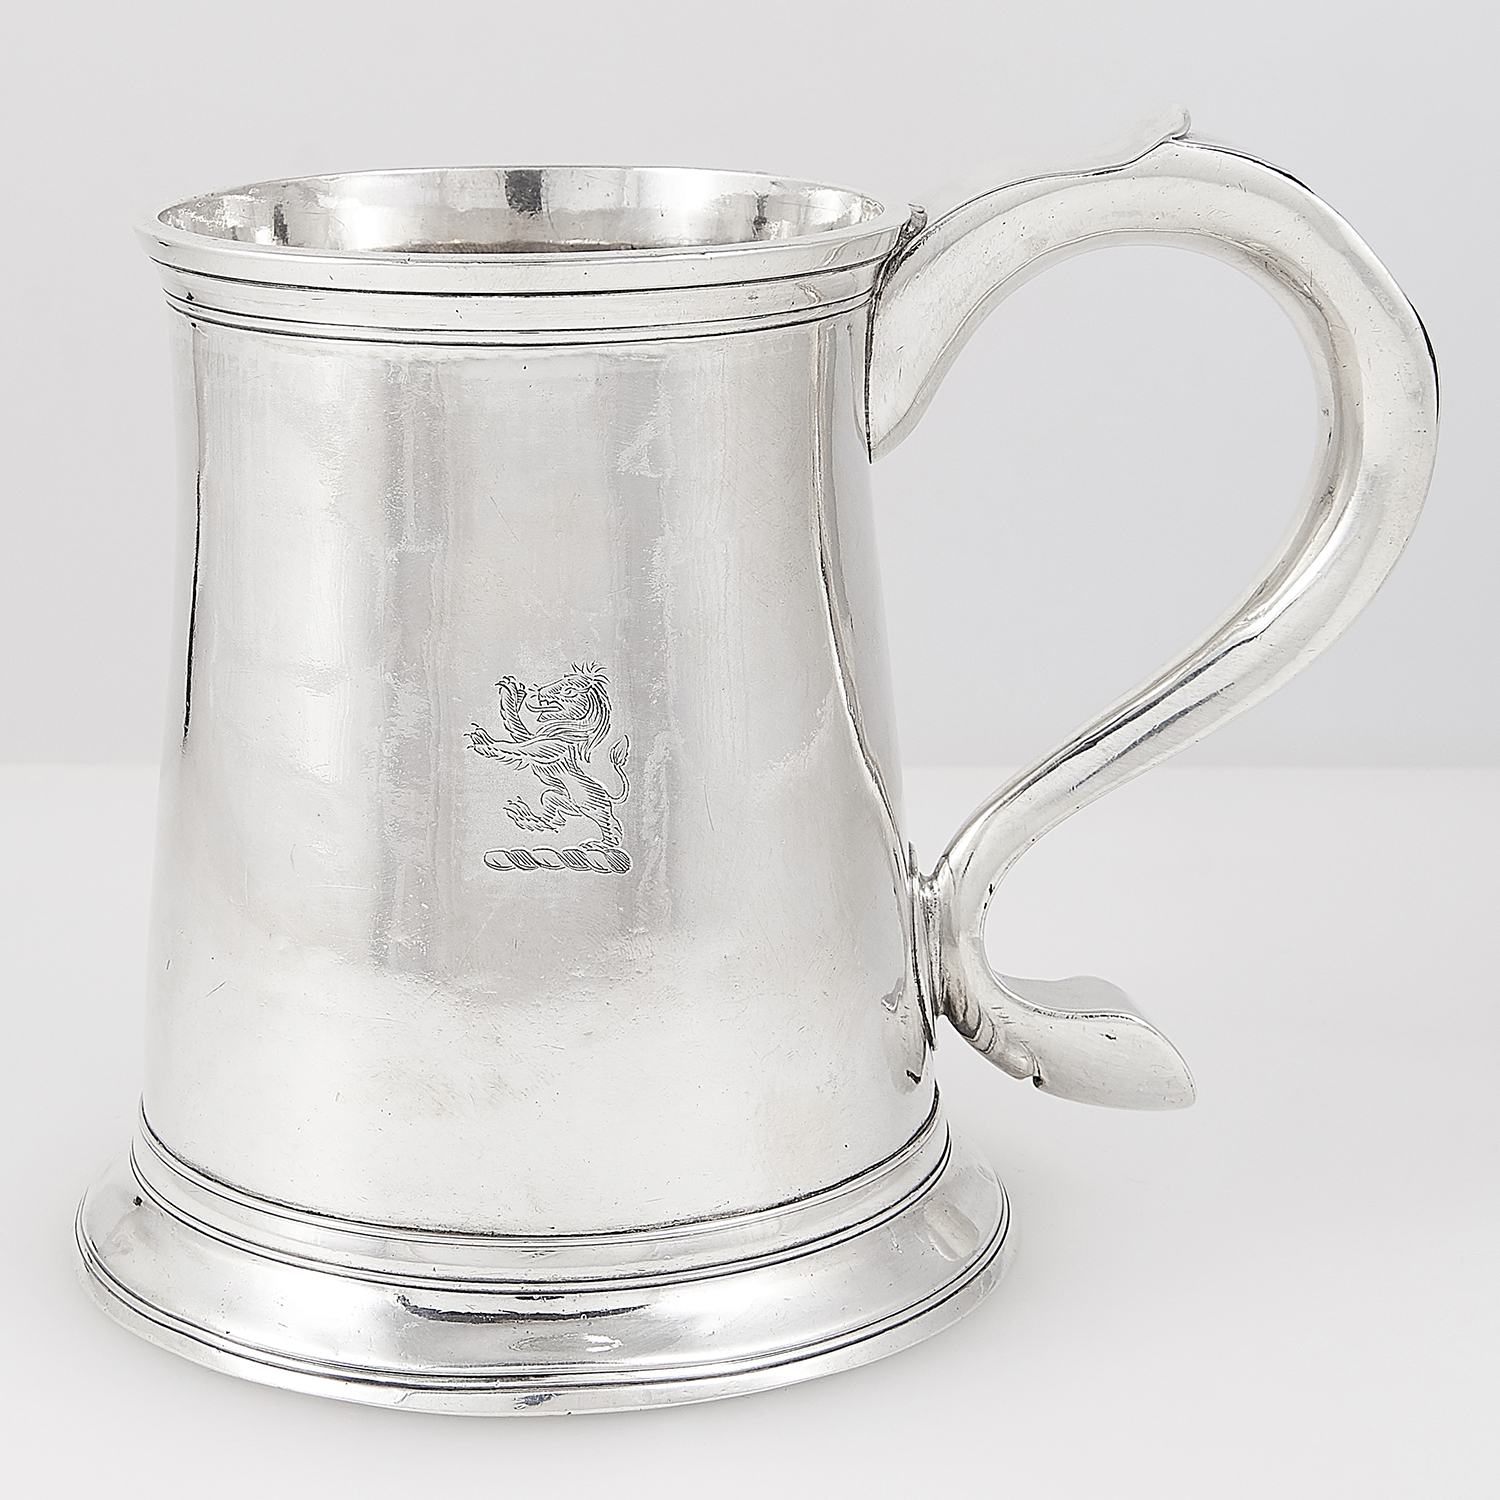 ANTIQUE GEORGE III STERLING SILVER PINT MUG, JOHN LANGLANDS, NEWCASTLE 1769 the tapering body on a